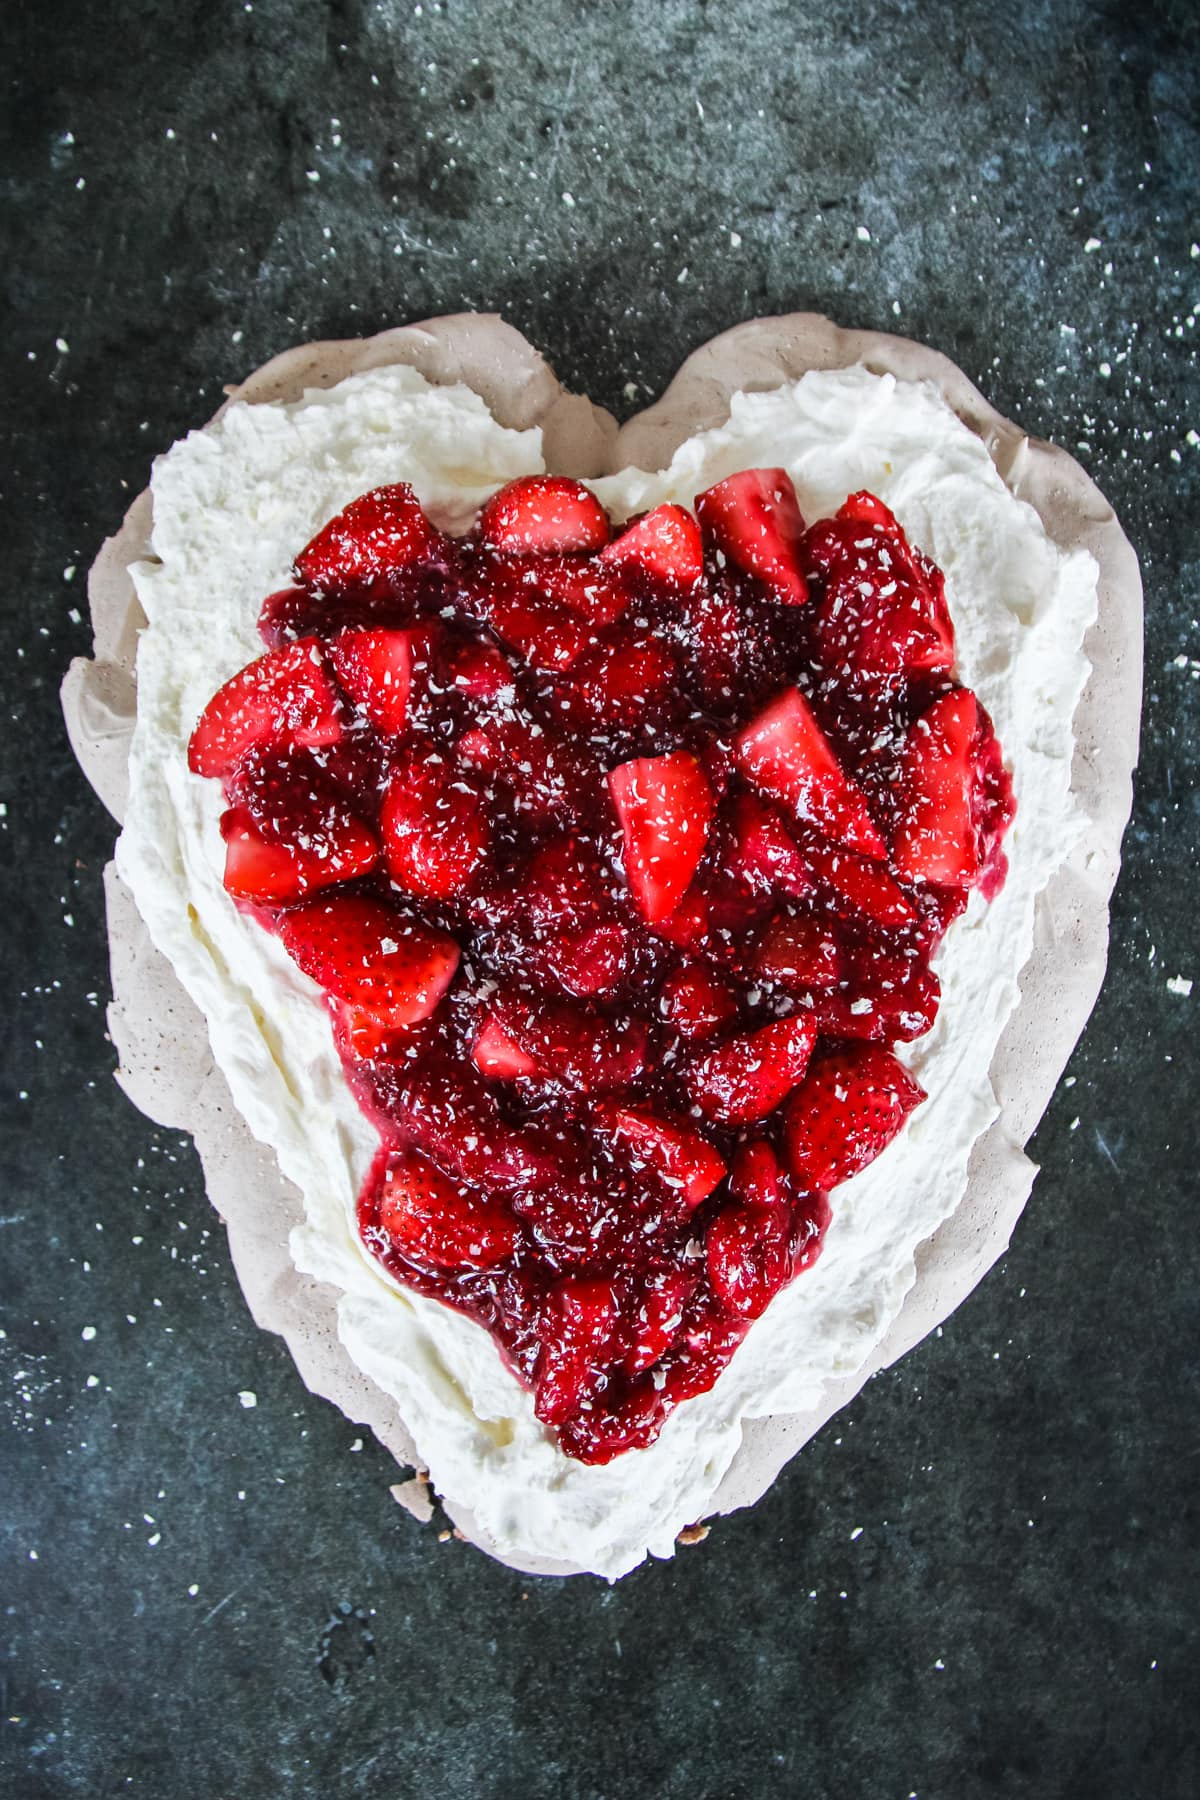 a heart shaped chocolate pavlova with layers of whipping cream and strawberries. on a dark background